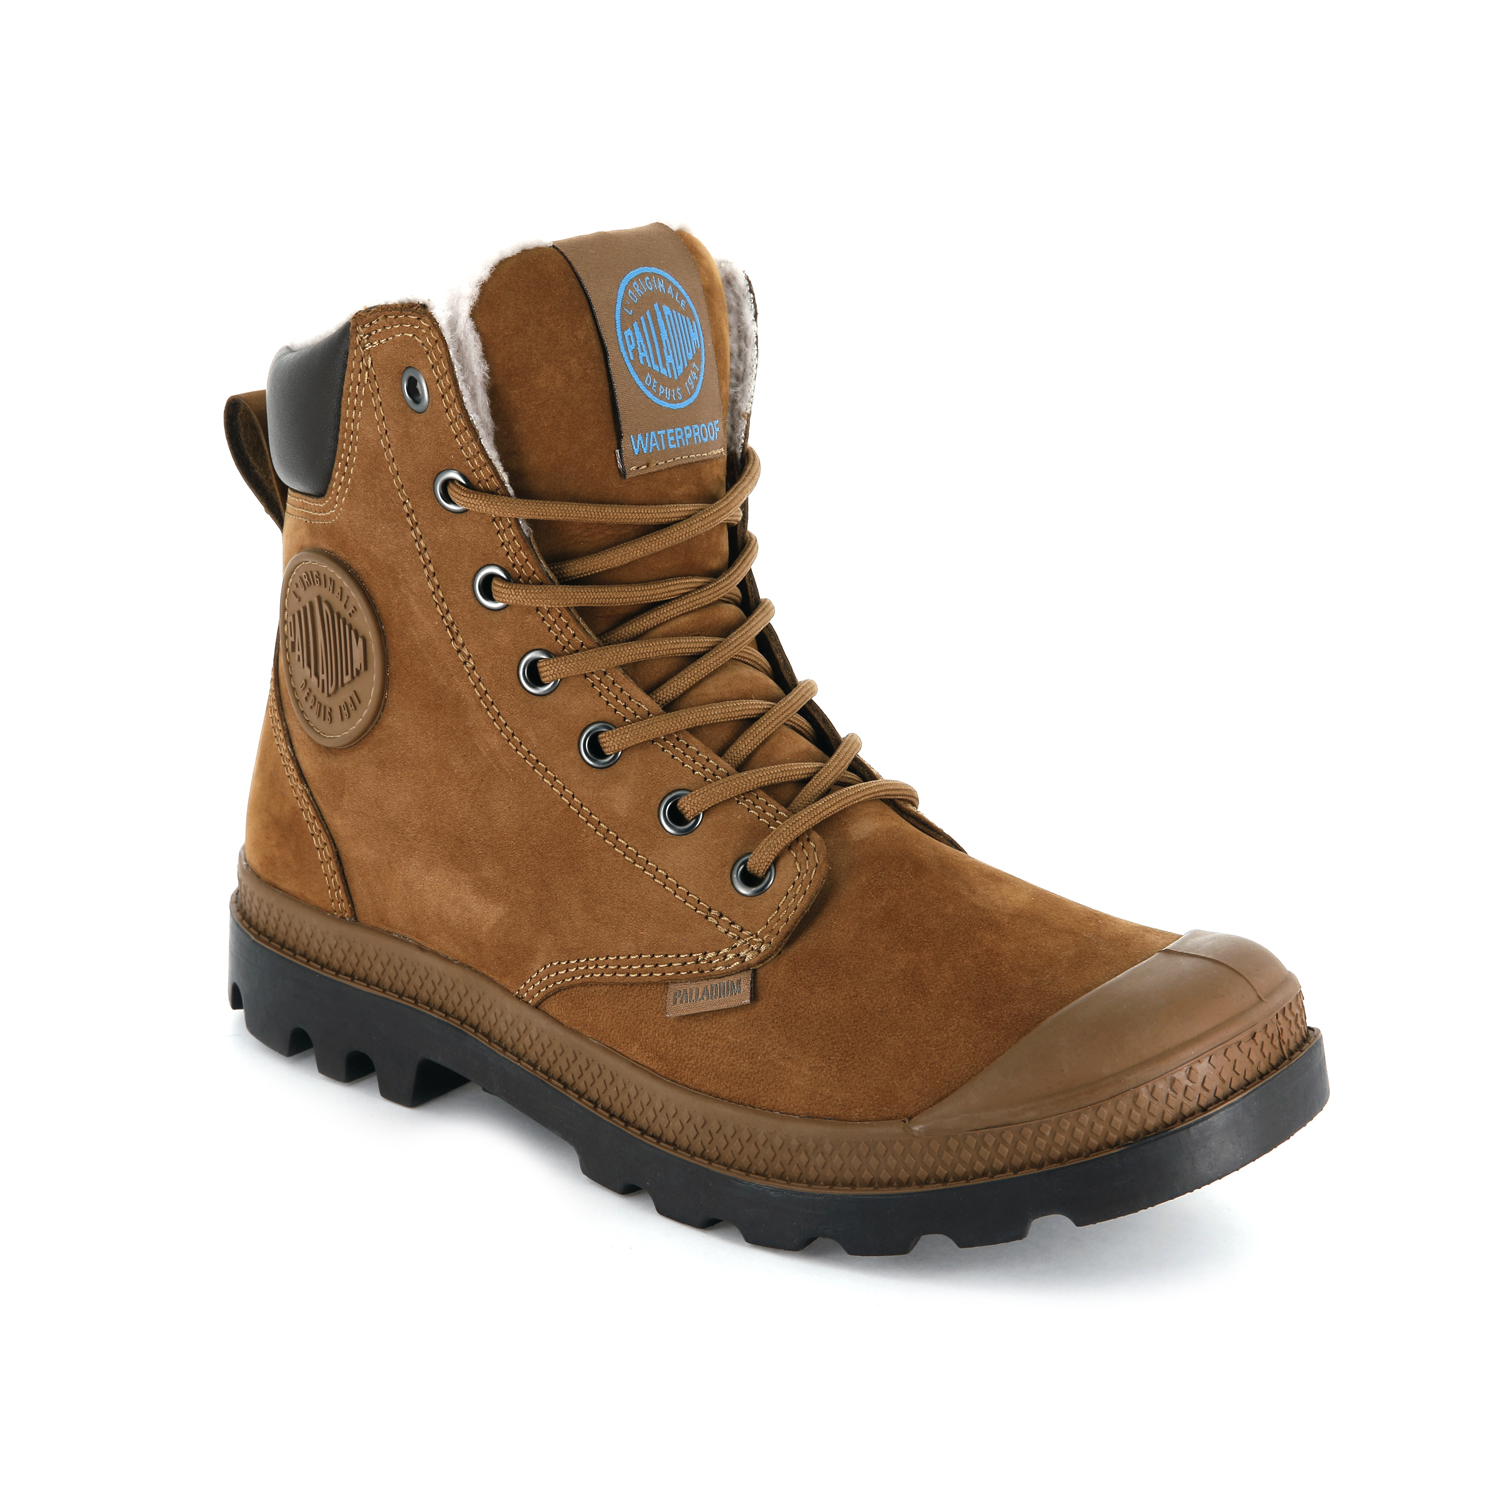 Palladium-Mens-Pampa-Sport-Cuff-Waterproof-Suede-Leather-Shoe-Wool-Lined-Boots thumbnail 23